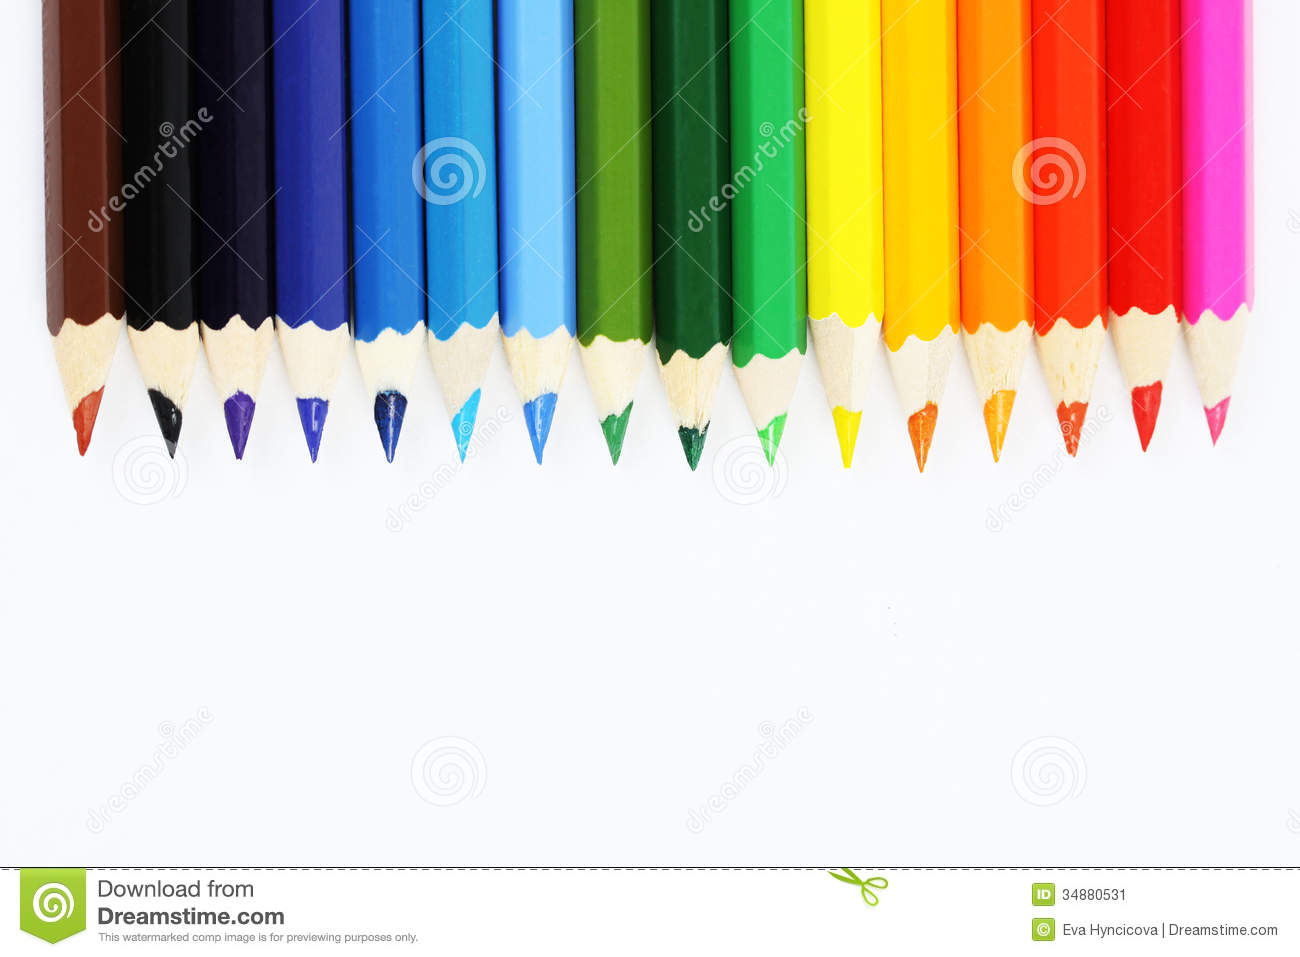 Rainbow colors in order pictures - Royalty Free Stock Photo